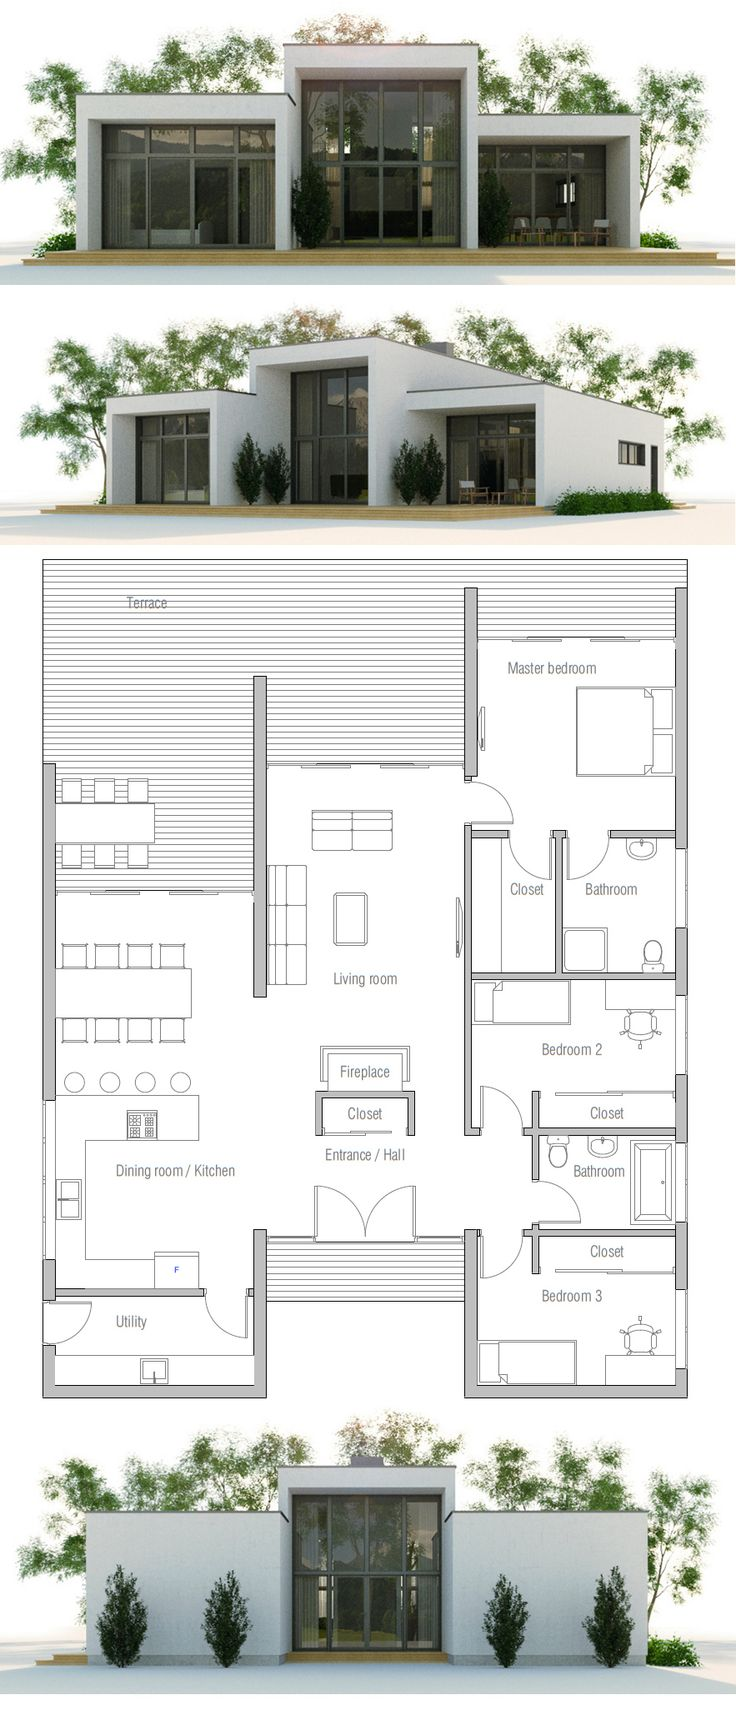 1000 images about maisons sur pinterest plans de maison for Maison minimaliste